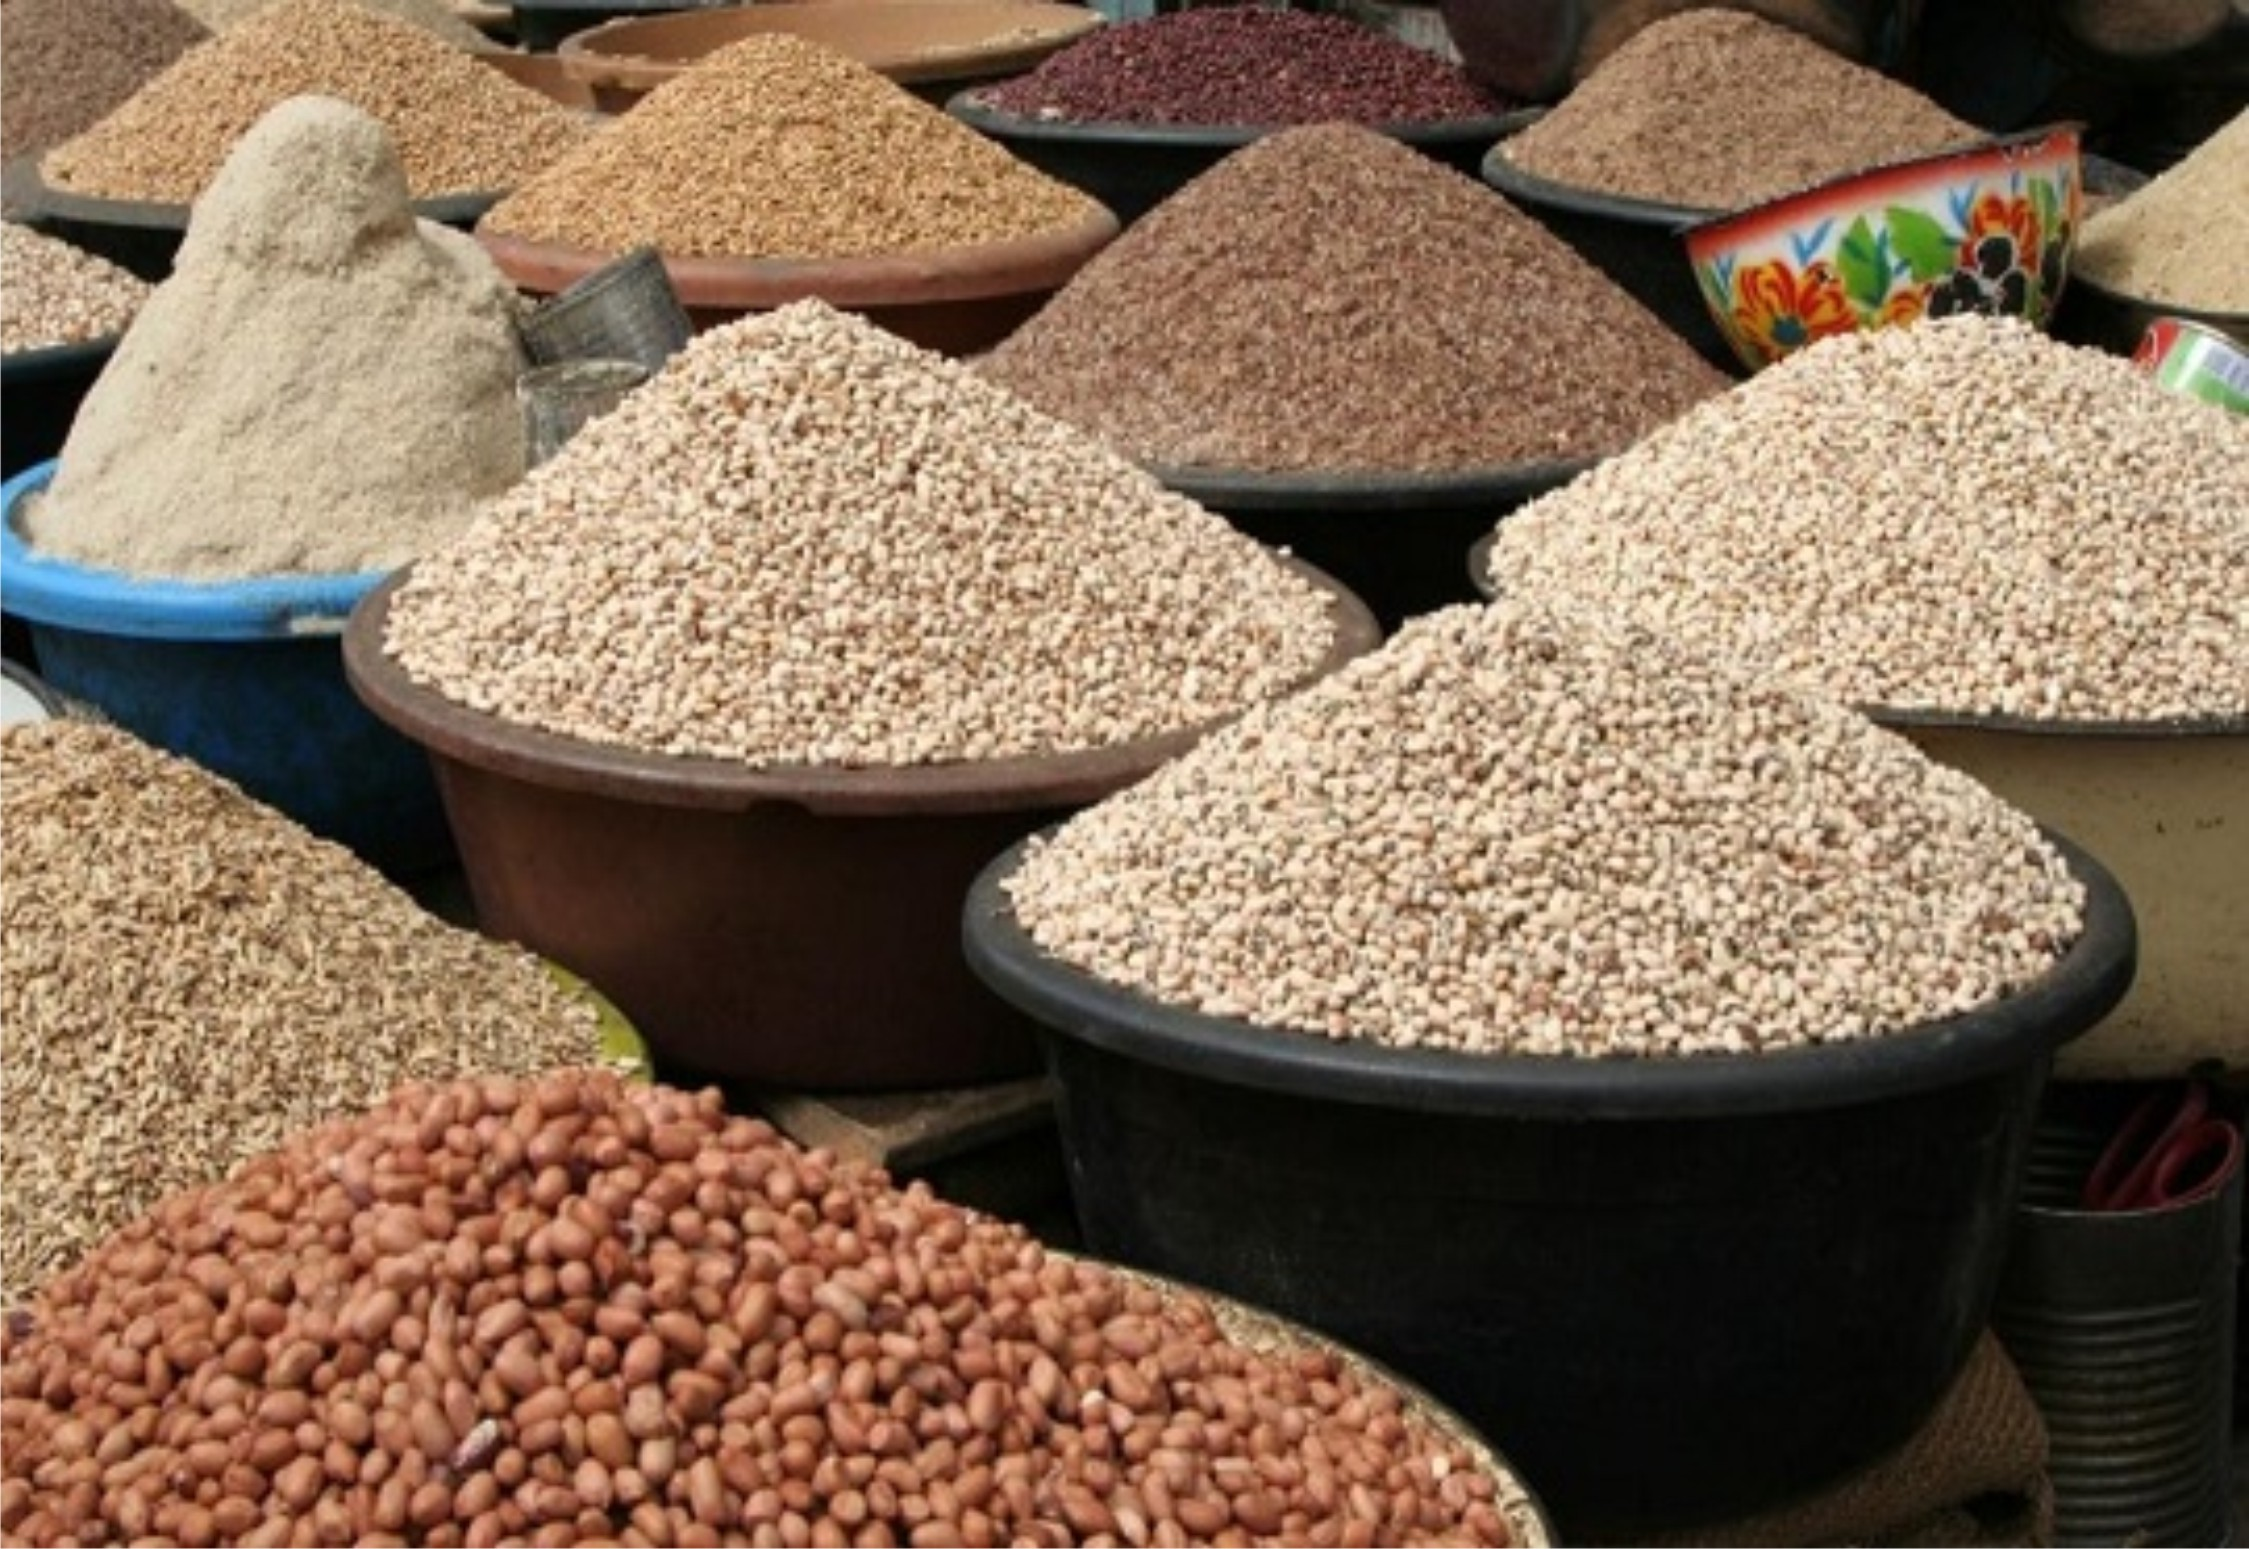 'Nigeria can be world's food basket'